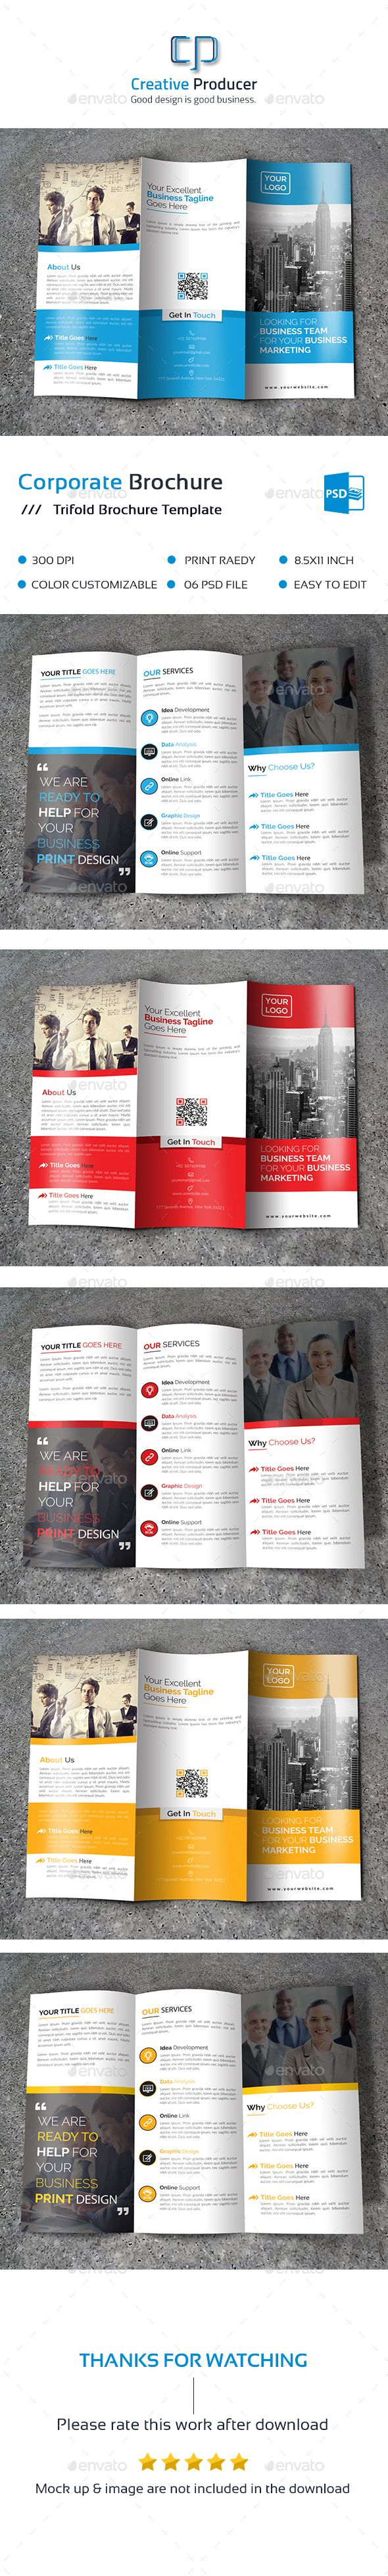 Corporate Tri Fold Brochure Template PSD. Download here: http://graphicriver.net/item/corporate-tri-fold-brochure-/15871444?ref=ksioks